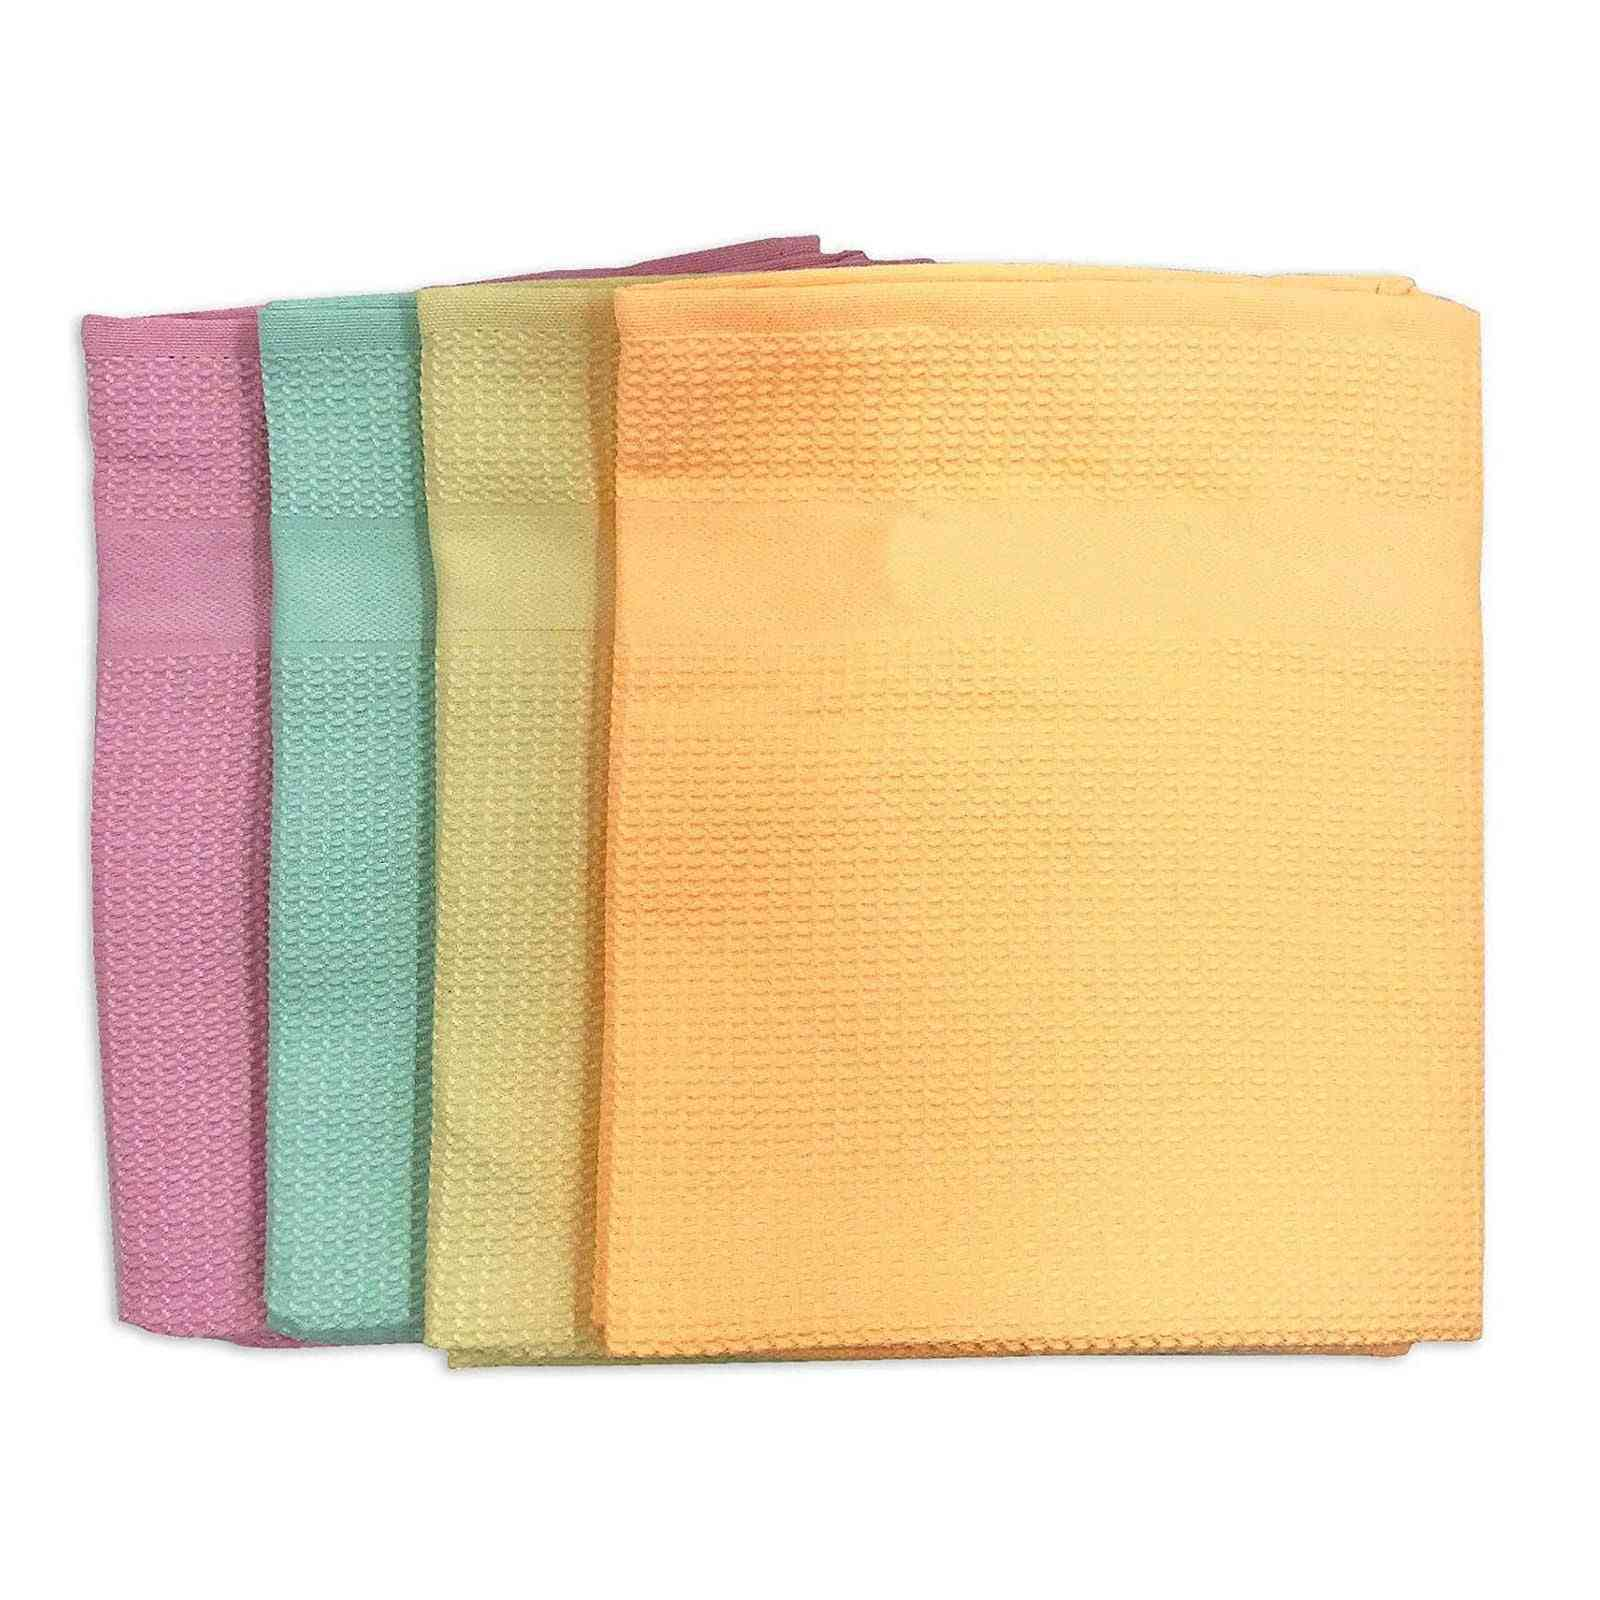 Microfiber Reusable Home Kitchen Wood Cleaning Cloth